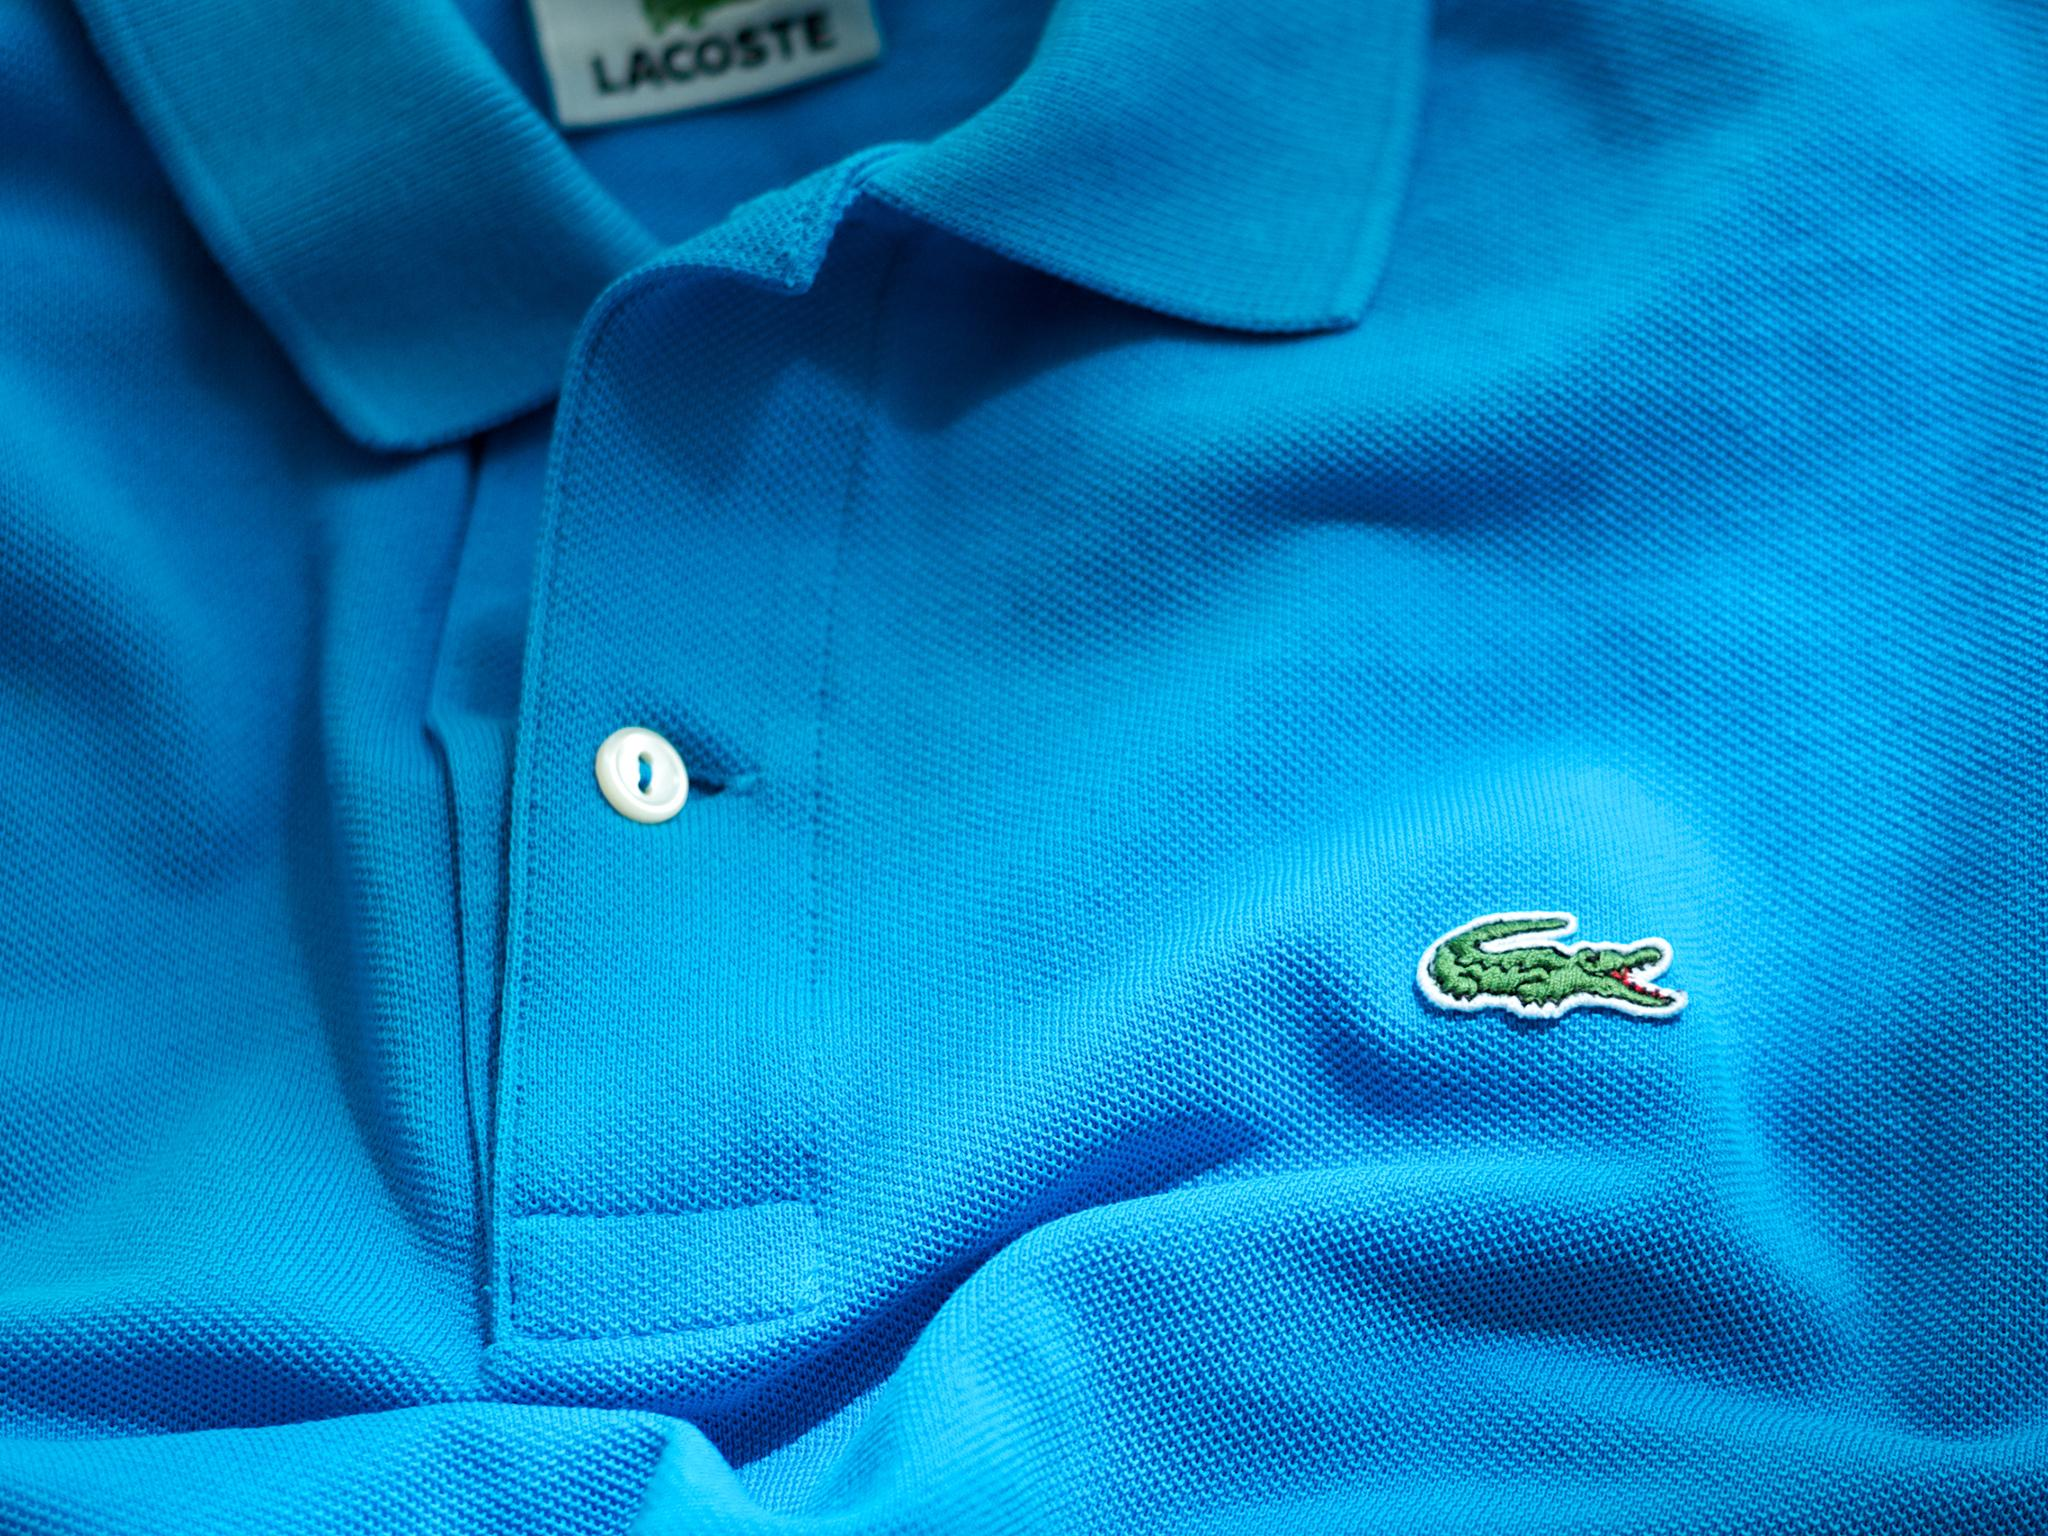 cbfd1e4575c Why people are cutting brand logos off their clothing | The Independent